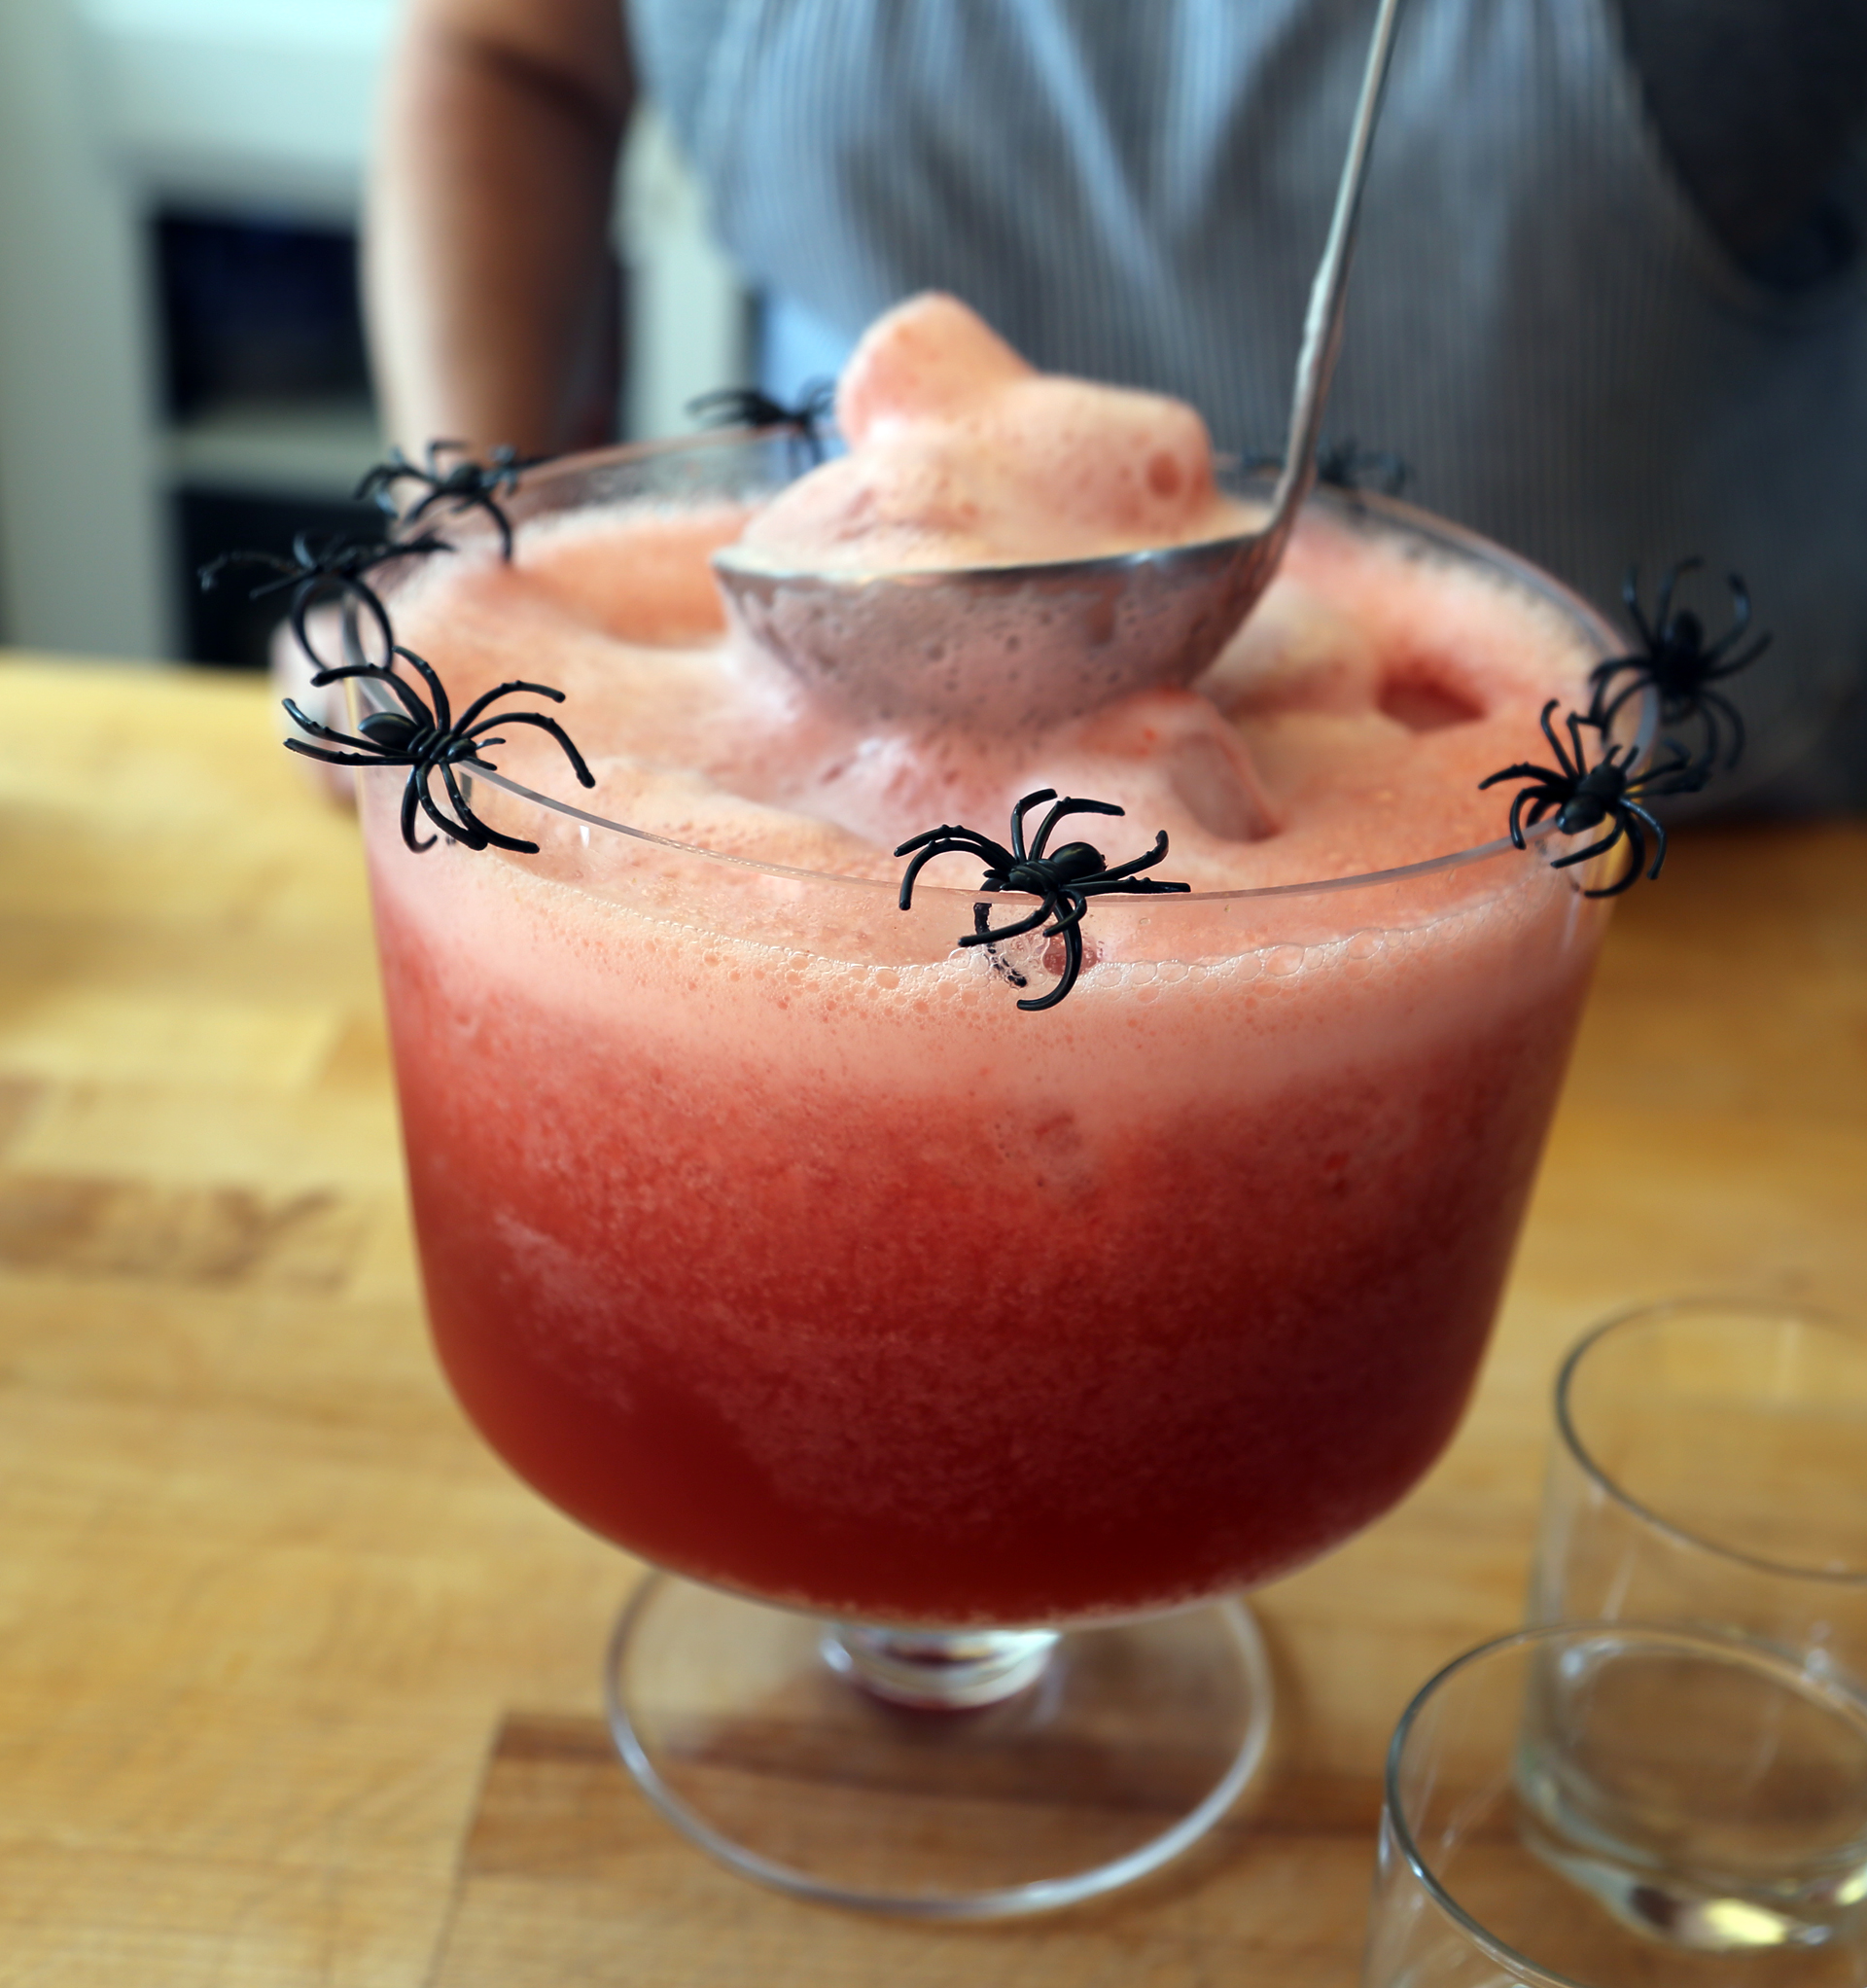 Add the ice cubes and garnish the bowl with terrifying creatures of the night.